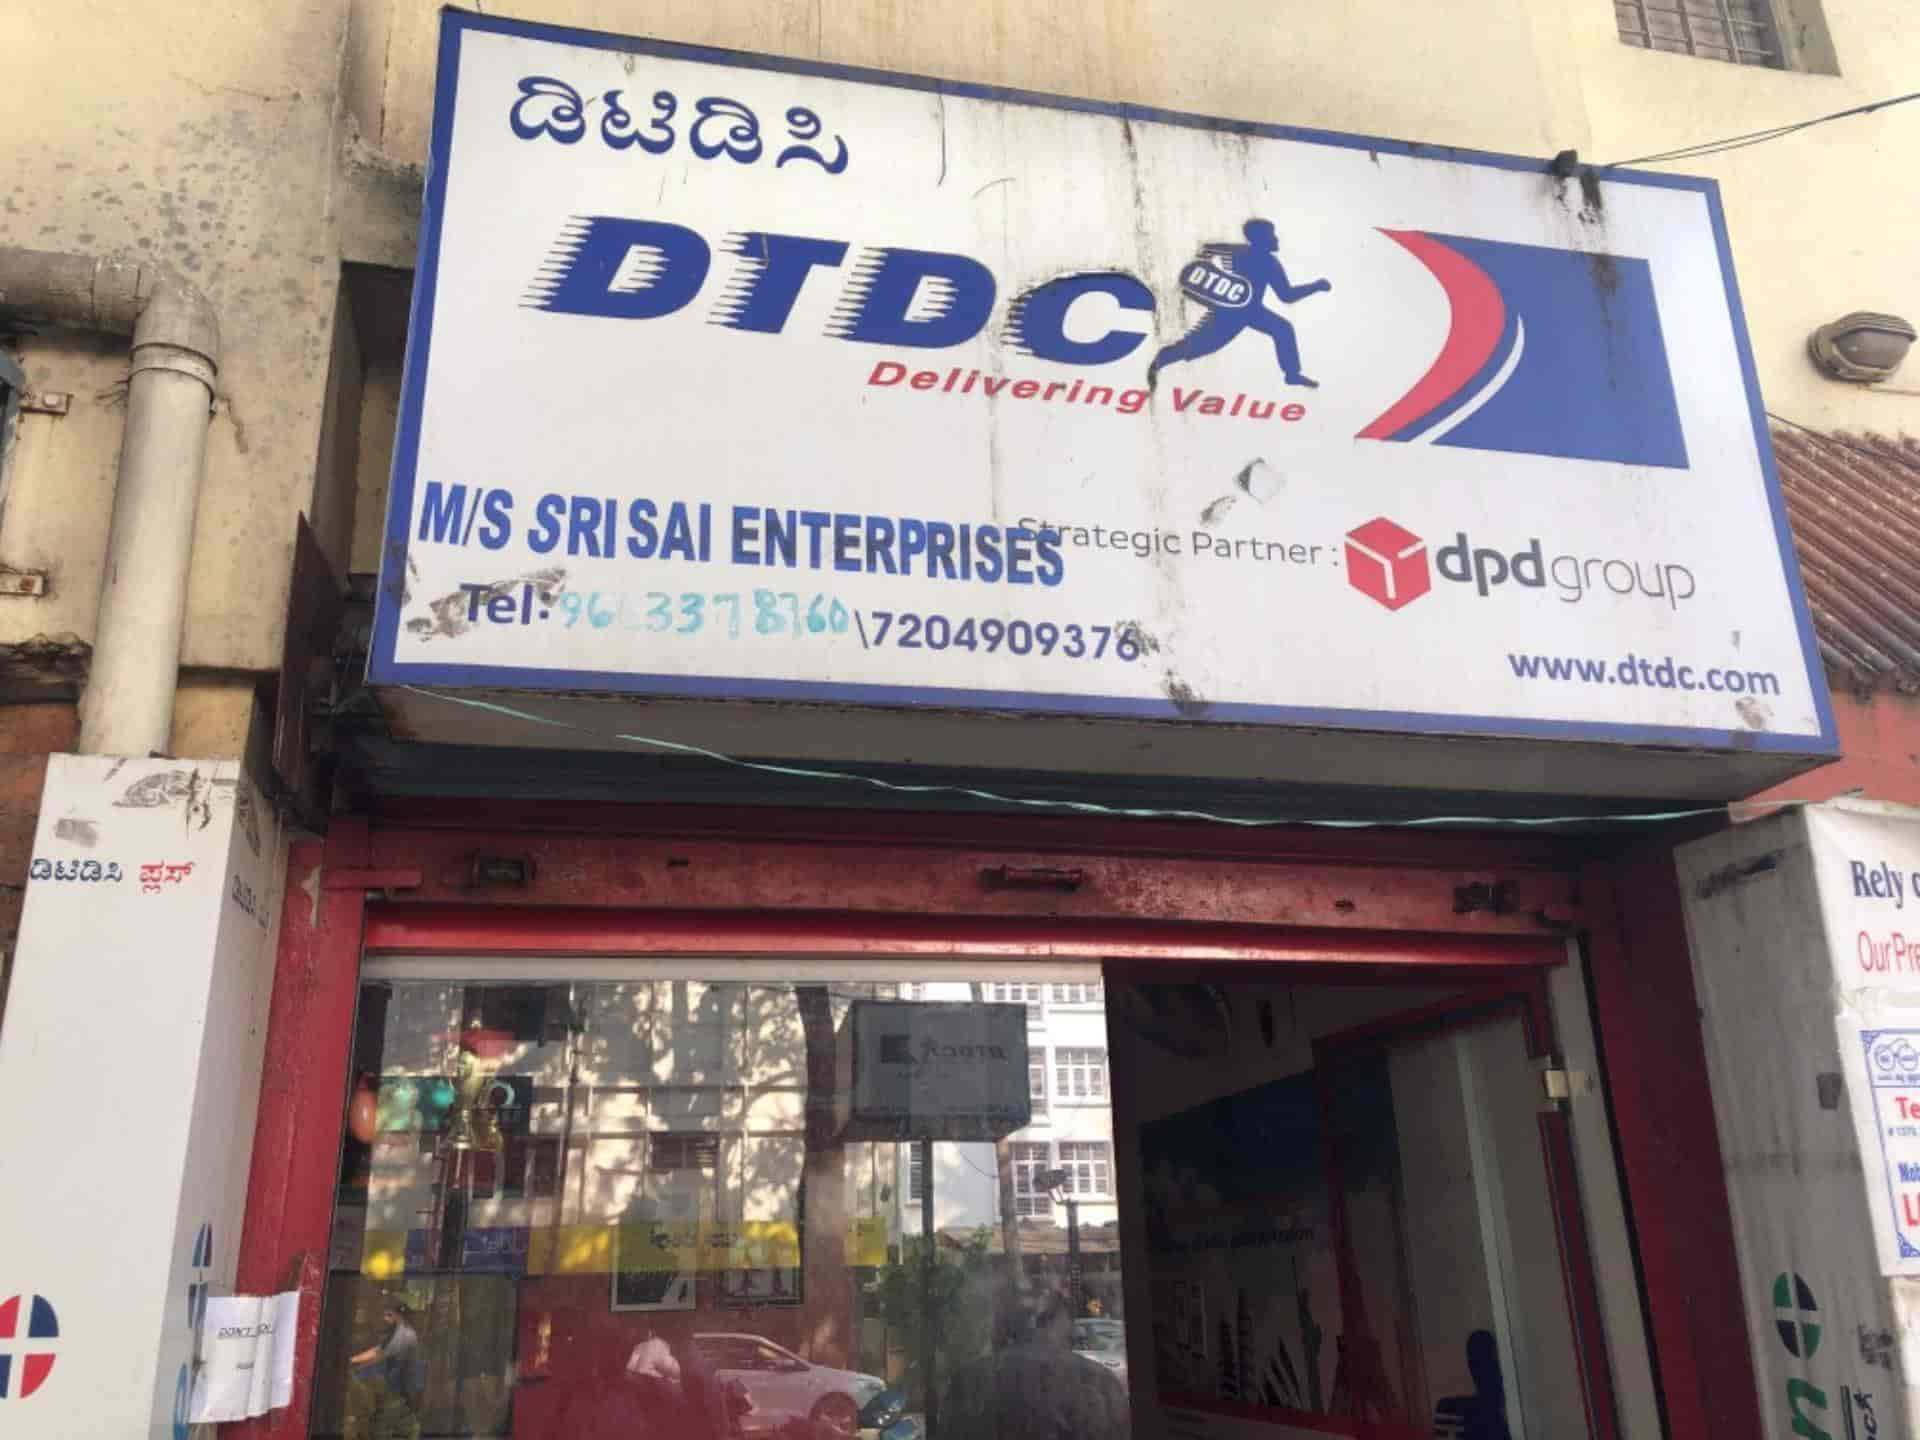 Dtdc Express Ltd Jayanagar 5th Block Courier Services In Bangalore Justdial